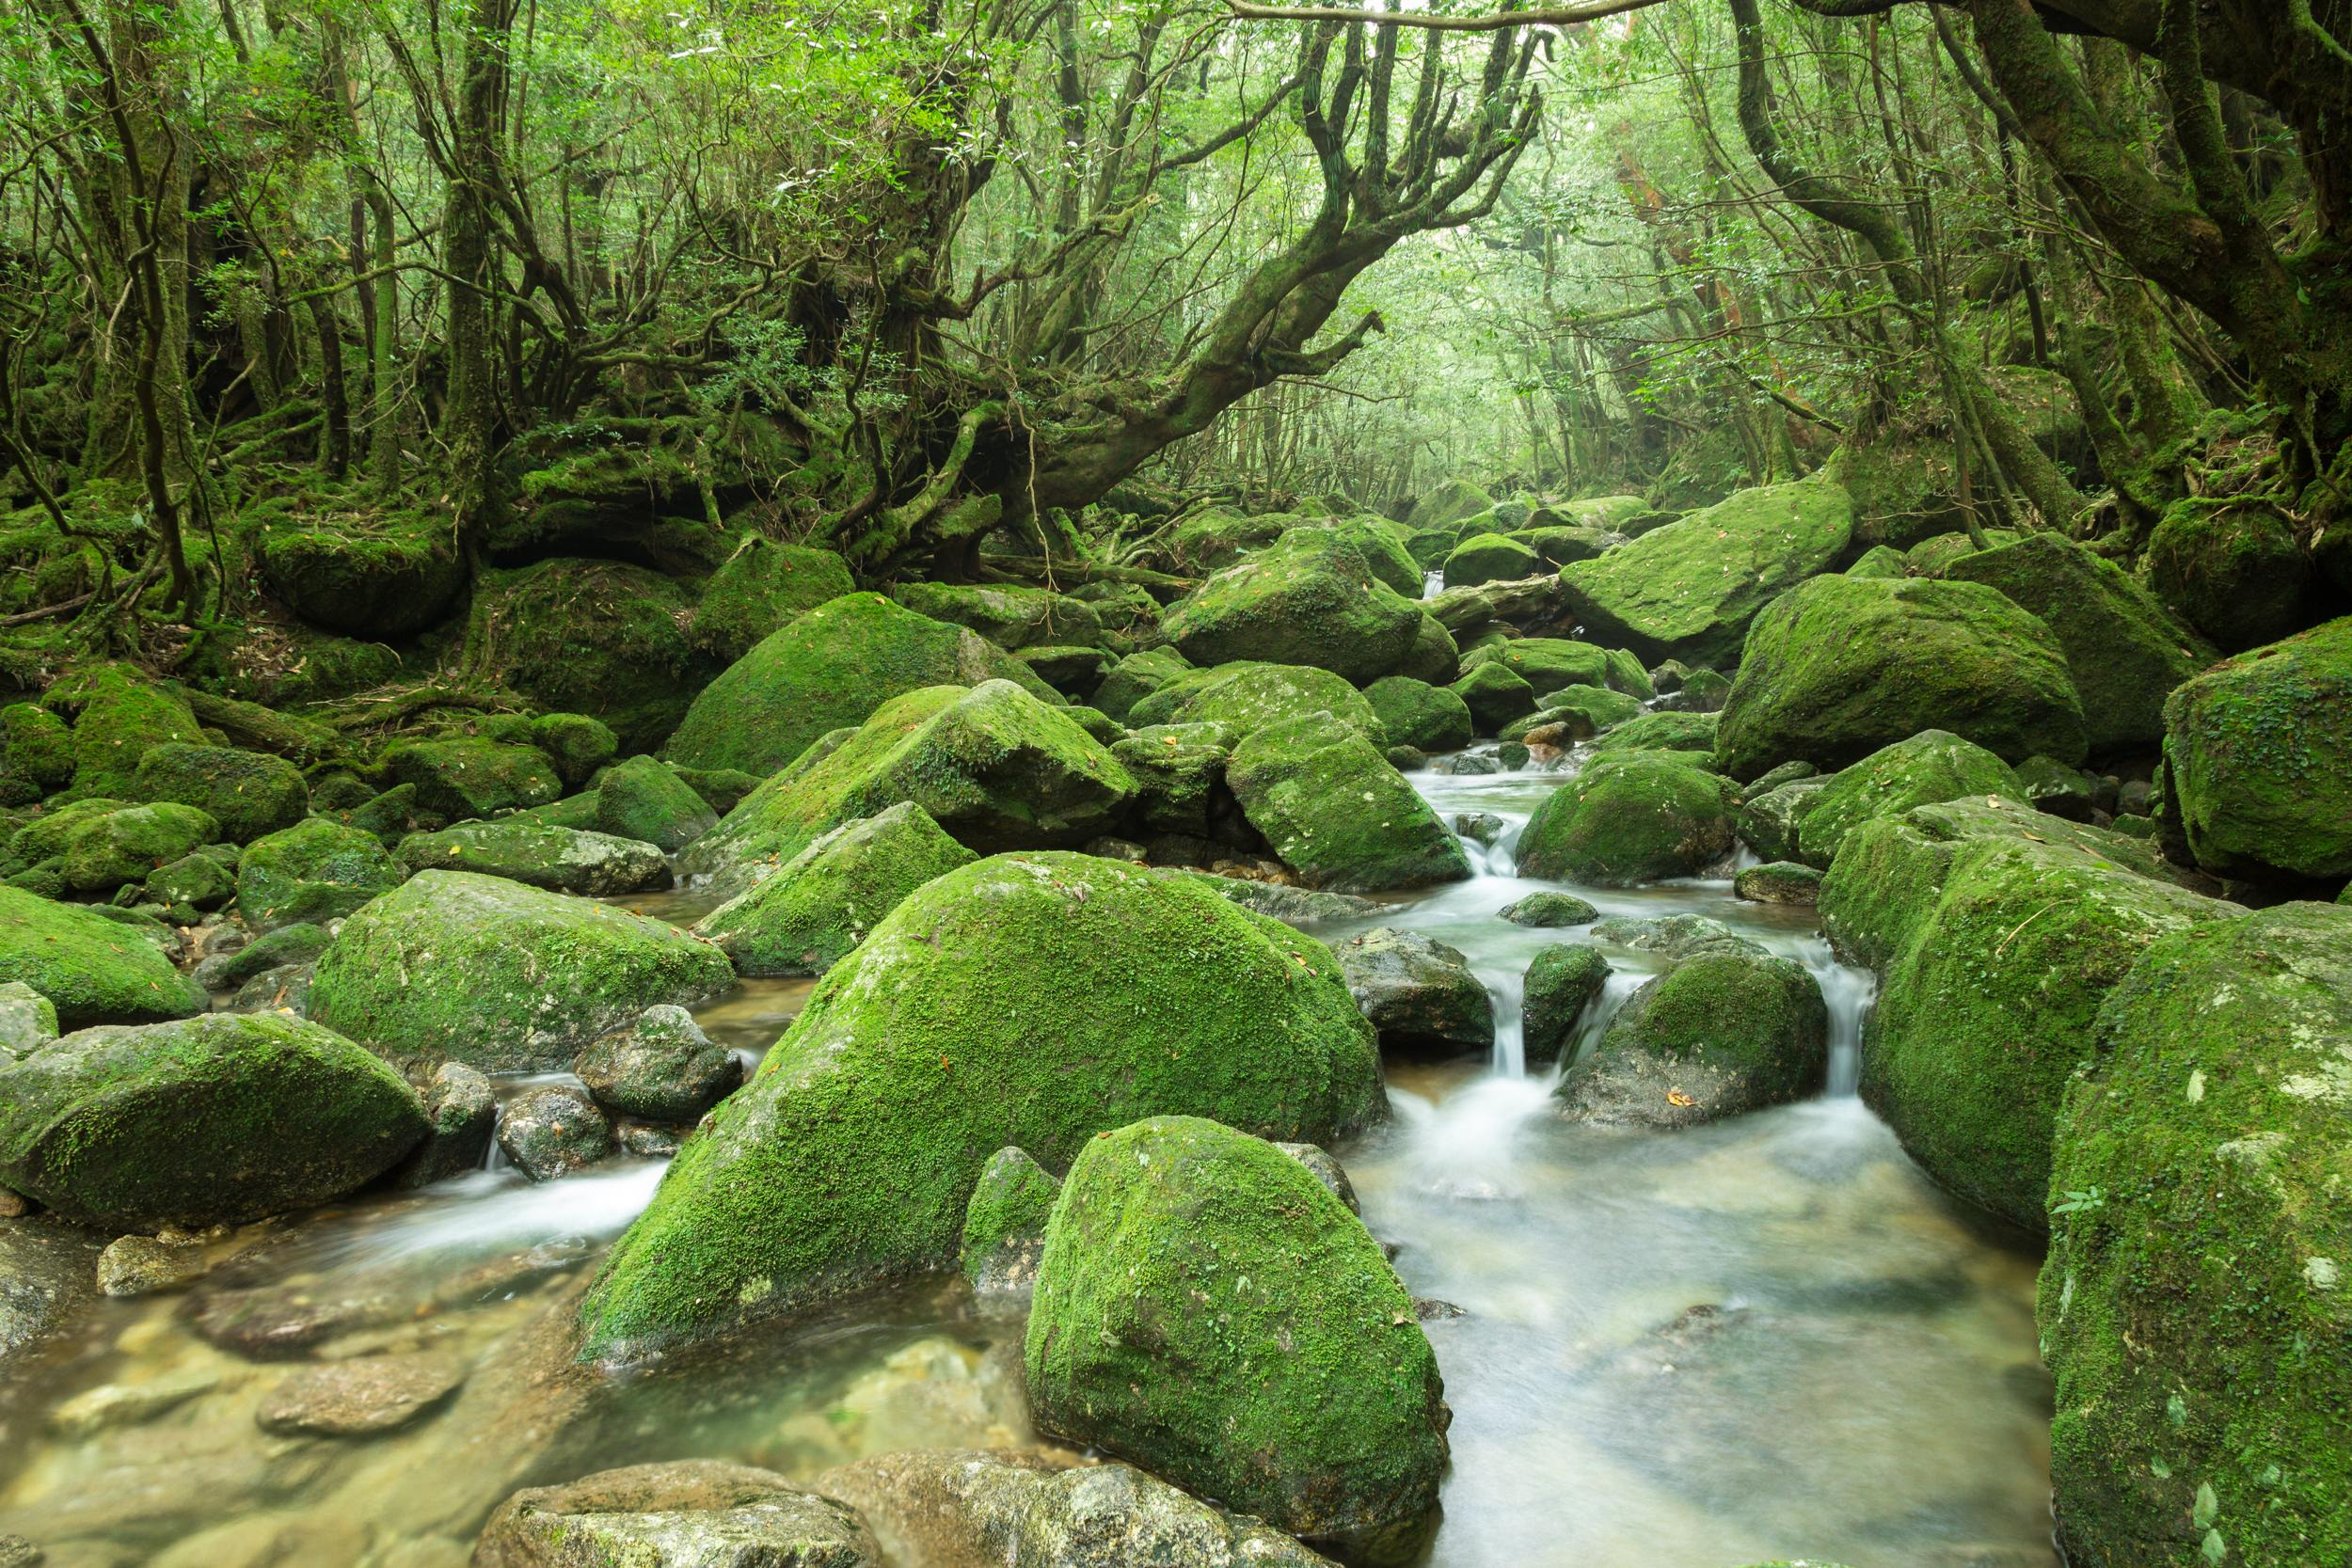 Moss-covered rocks and trees surrounding a stream